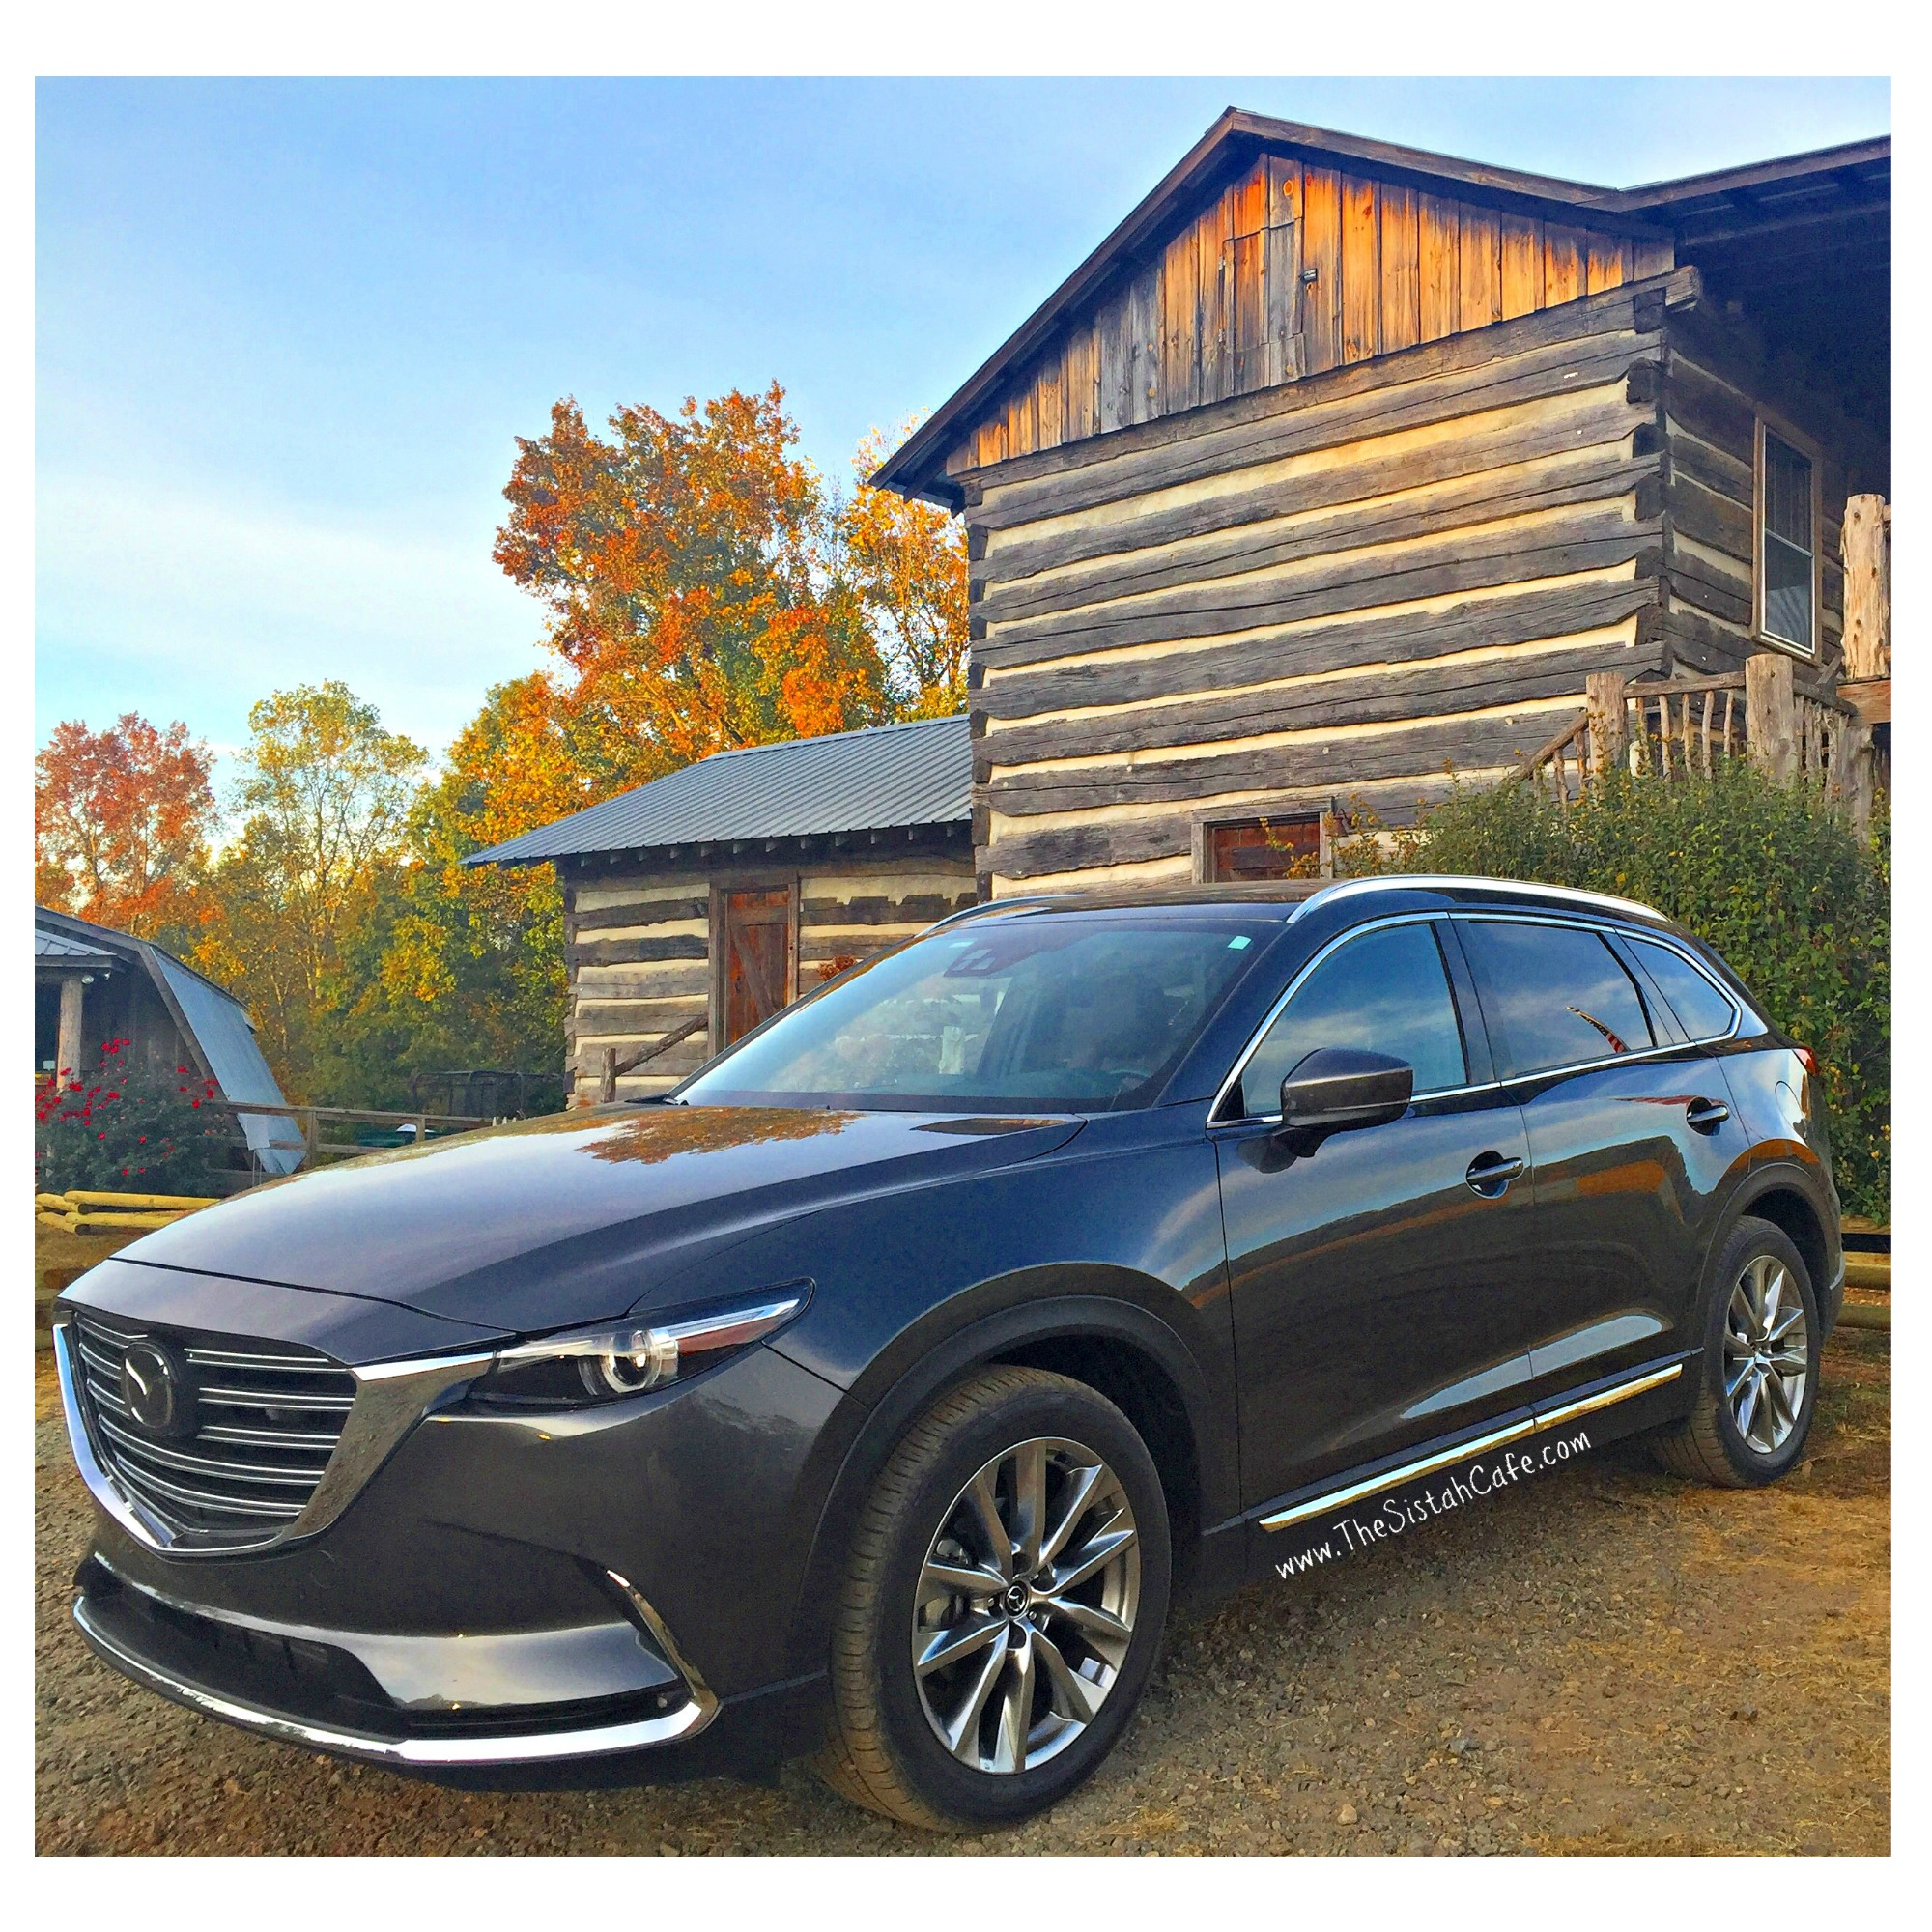 cruising wine country in the 2016 mazda cx 9 the sistah cafe. Black Bedroom Furniture Sets. Home Design Ideas